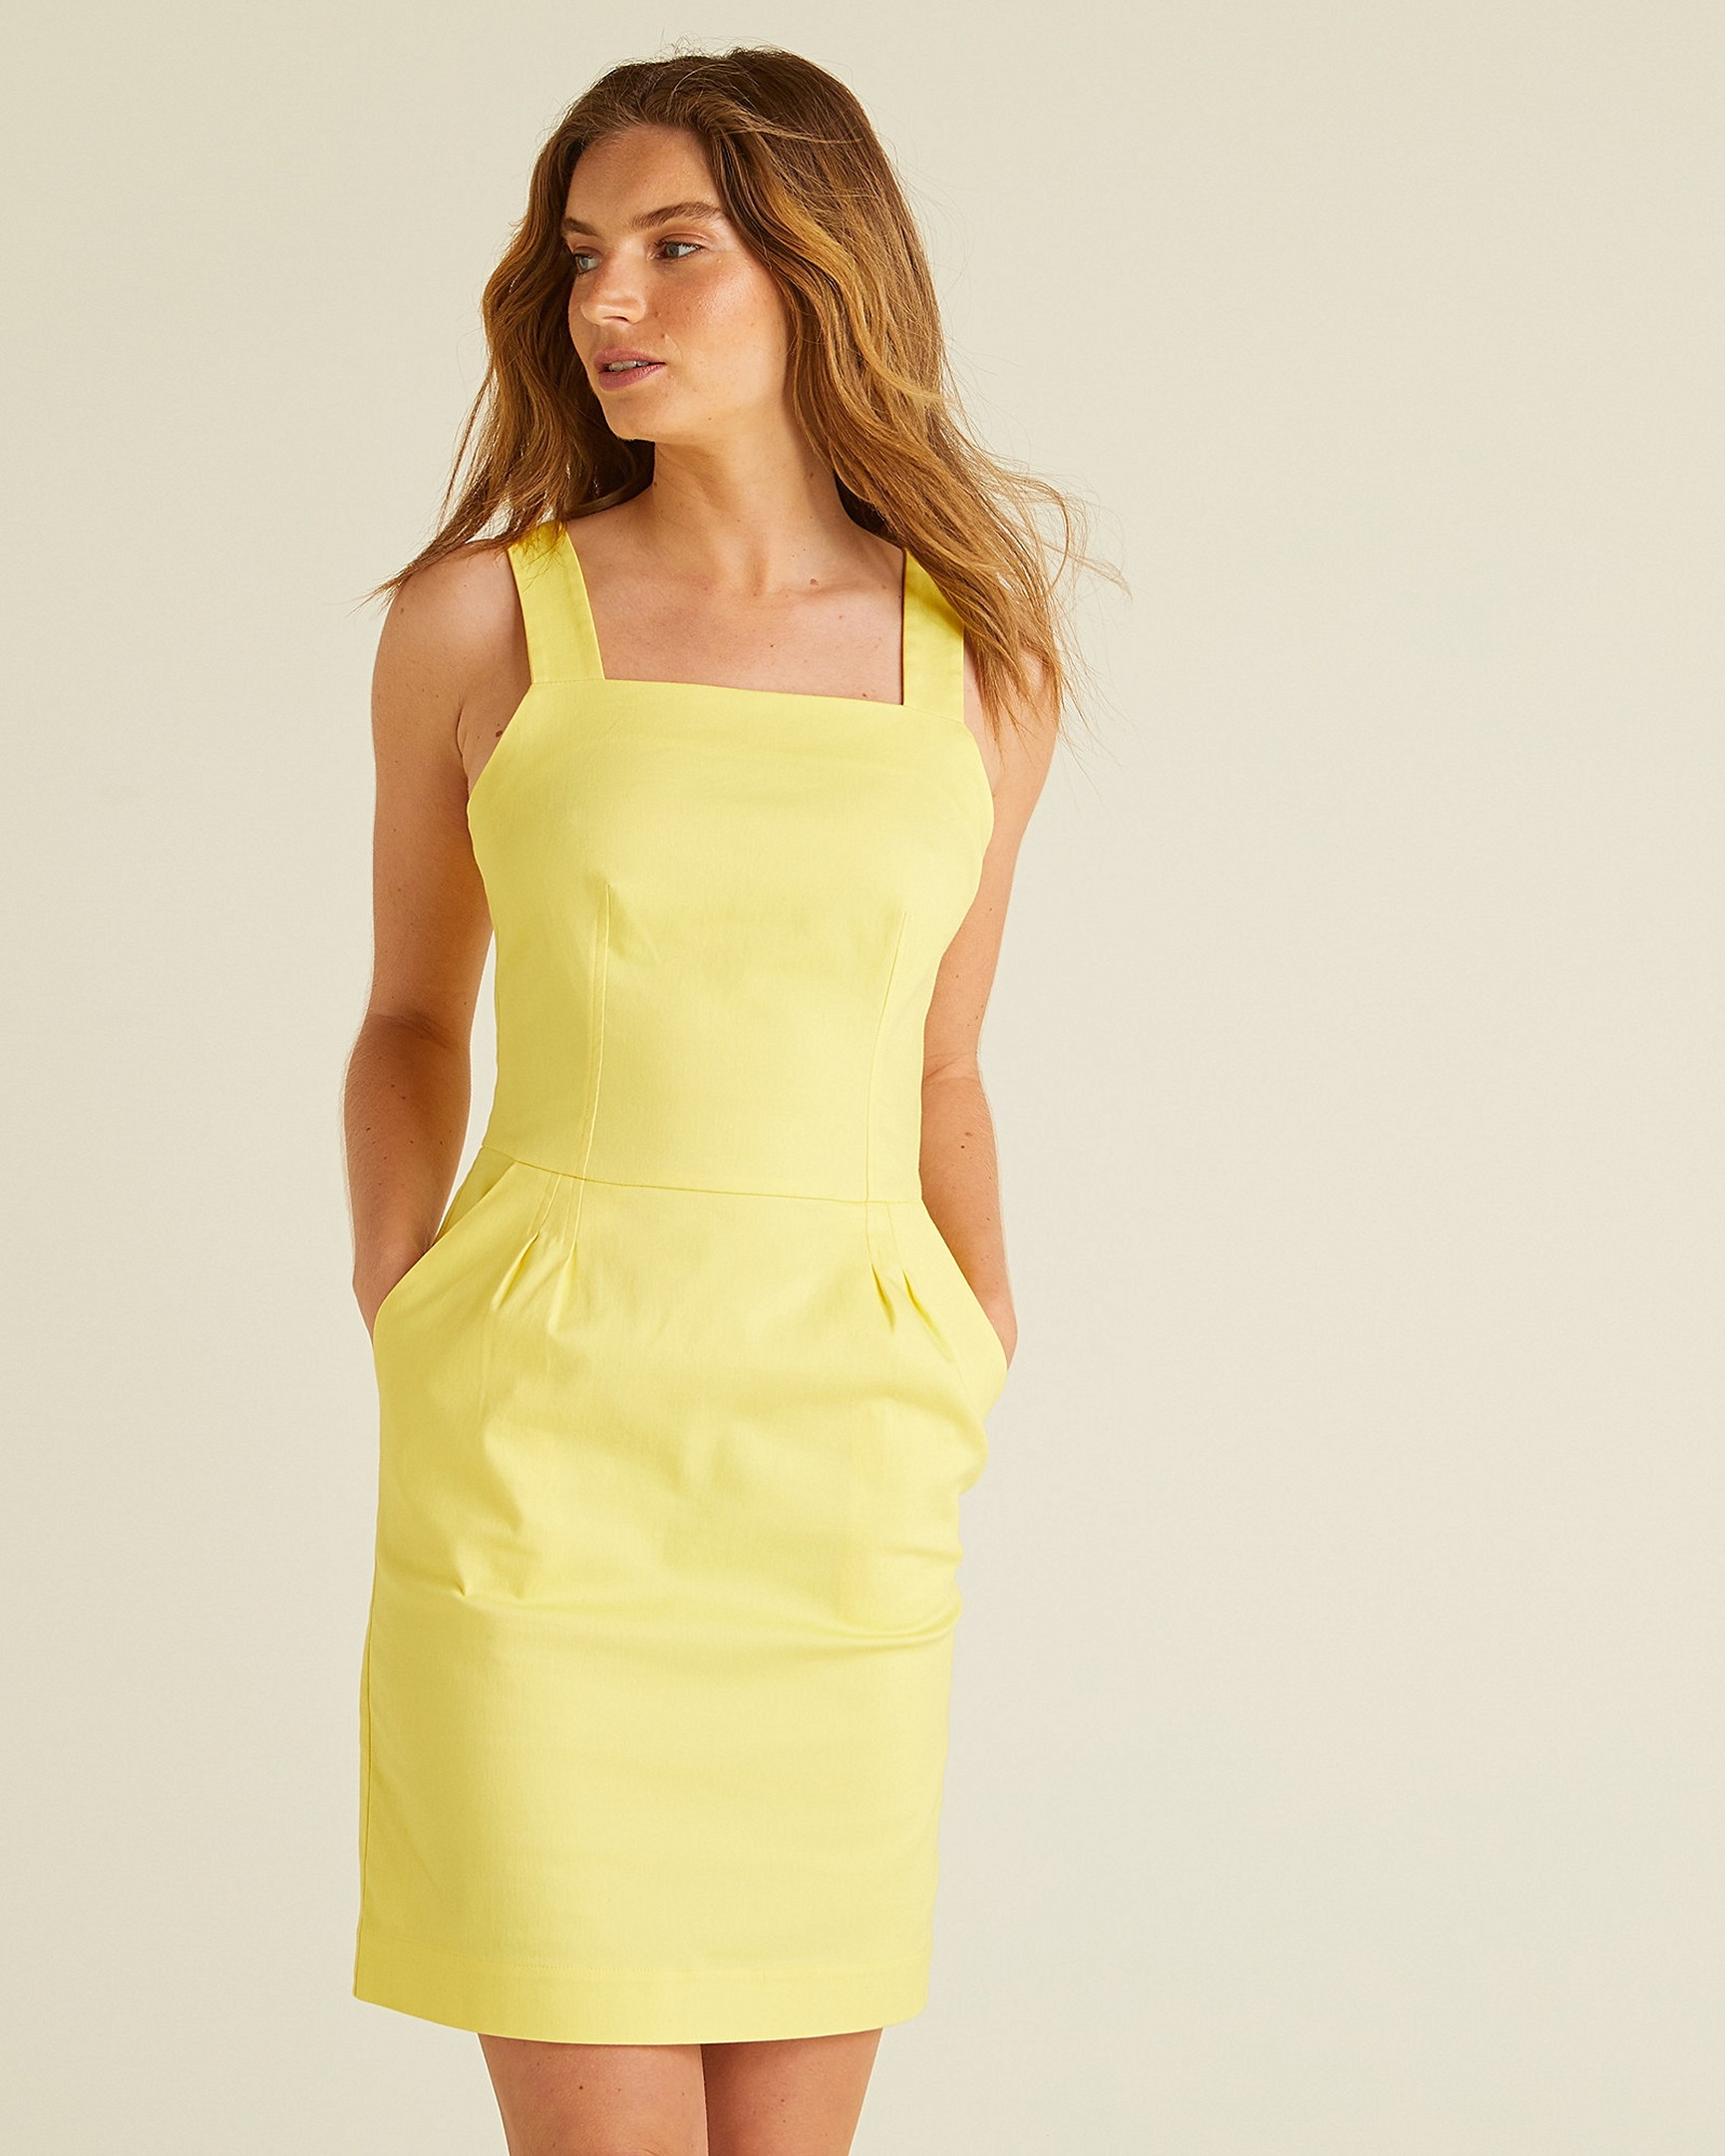 6876bf98cfa Structured Yellow Mini Dress